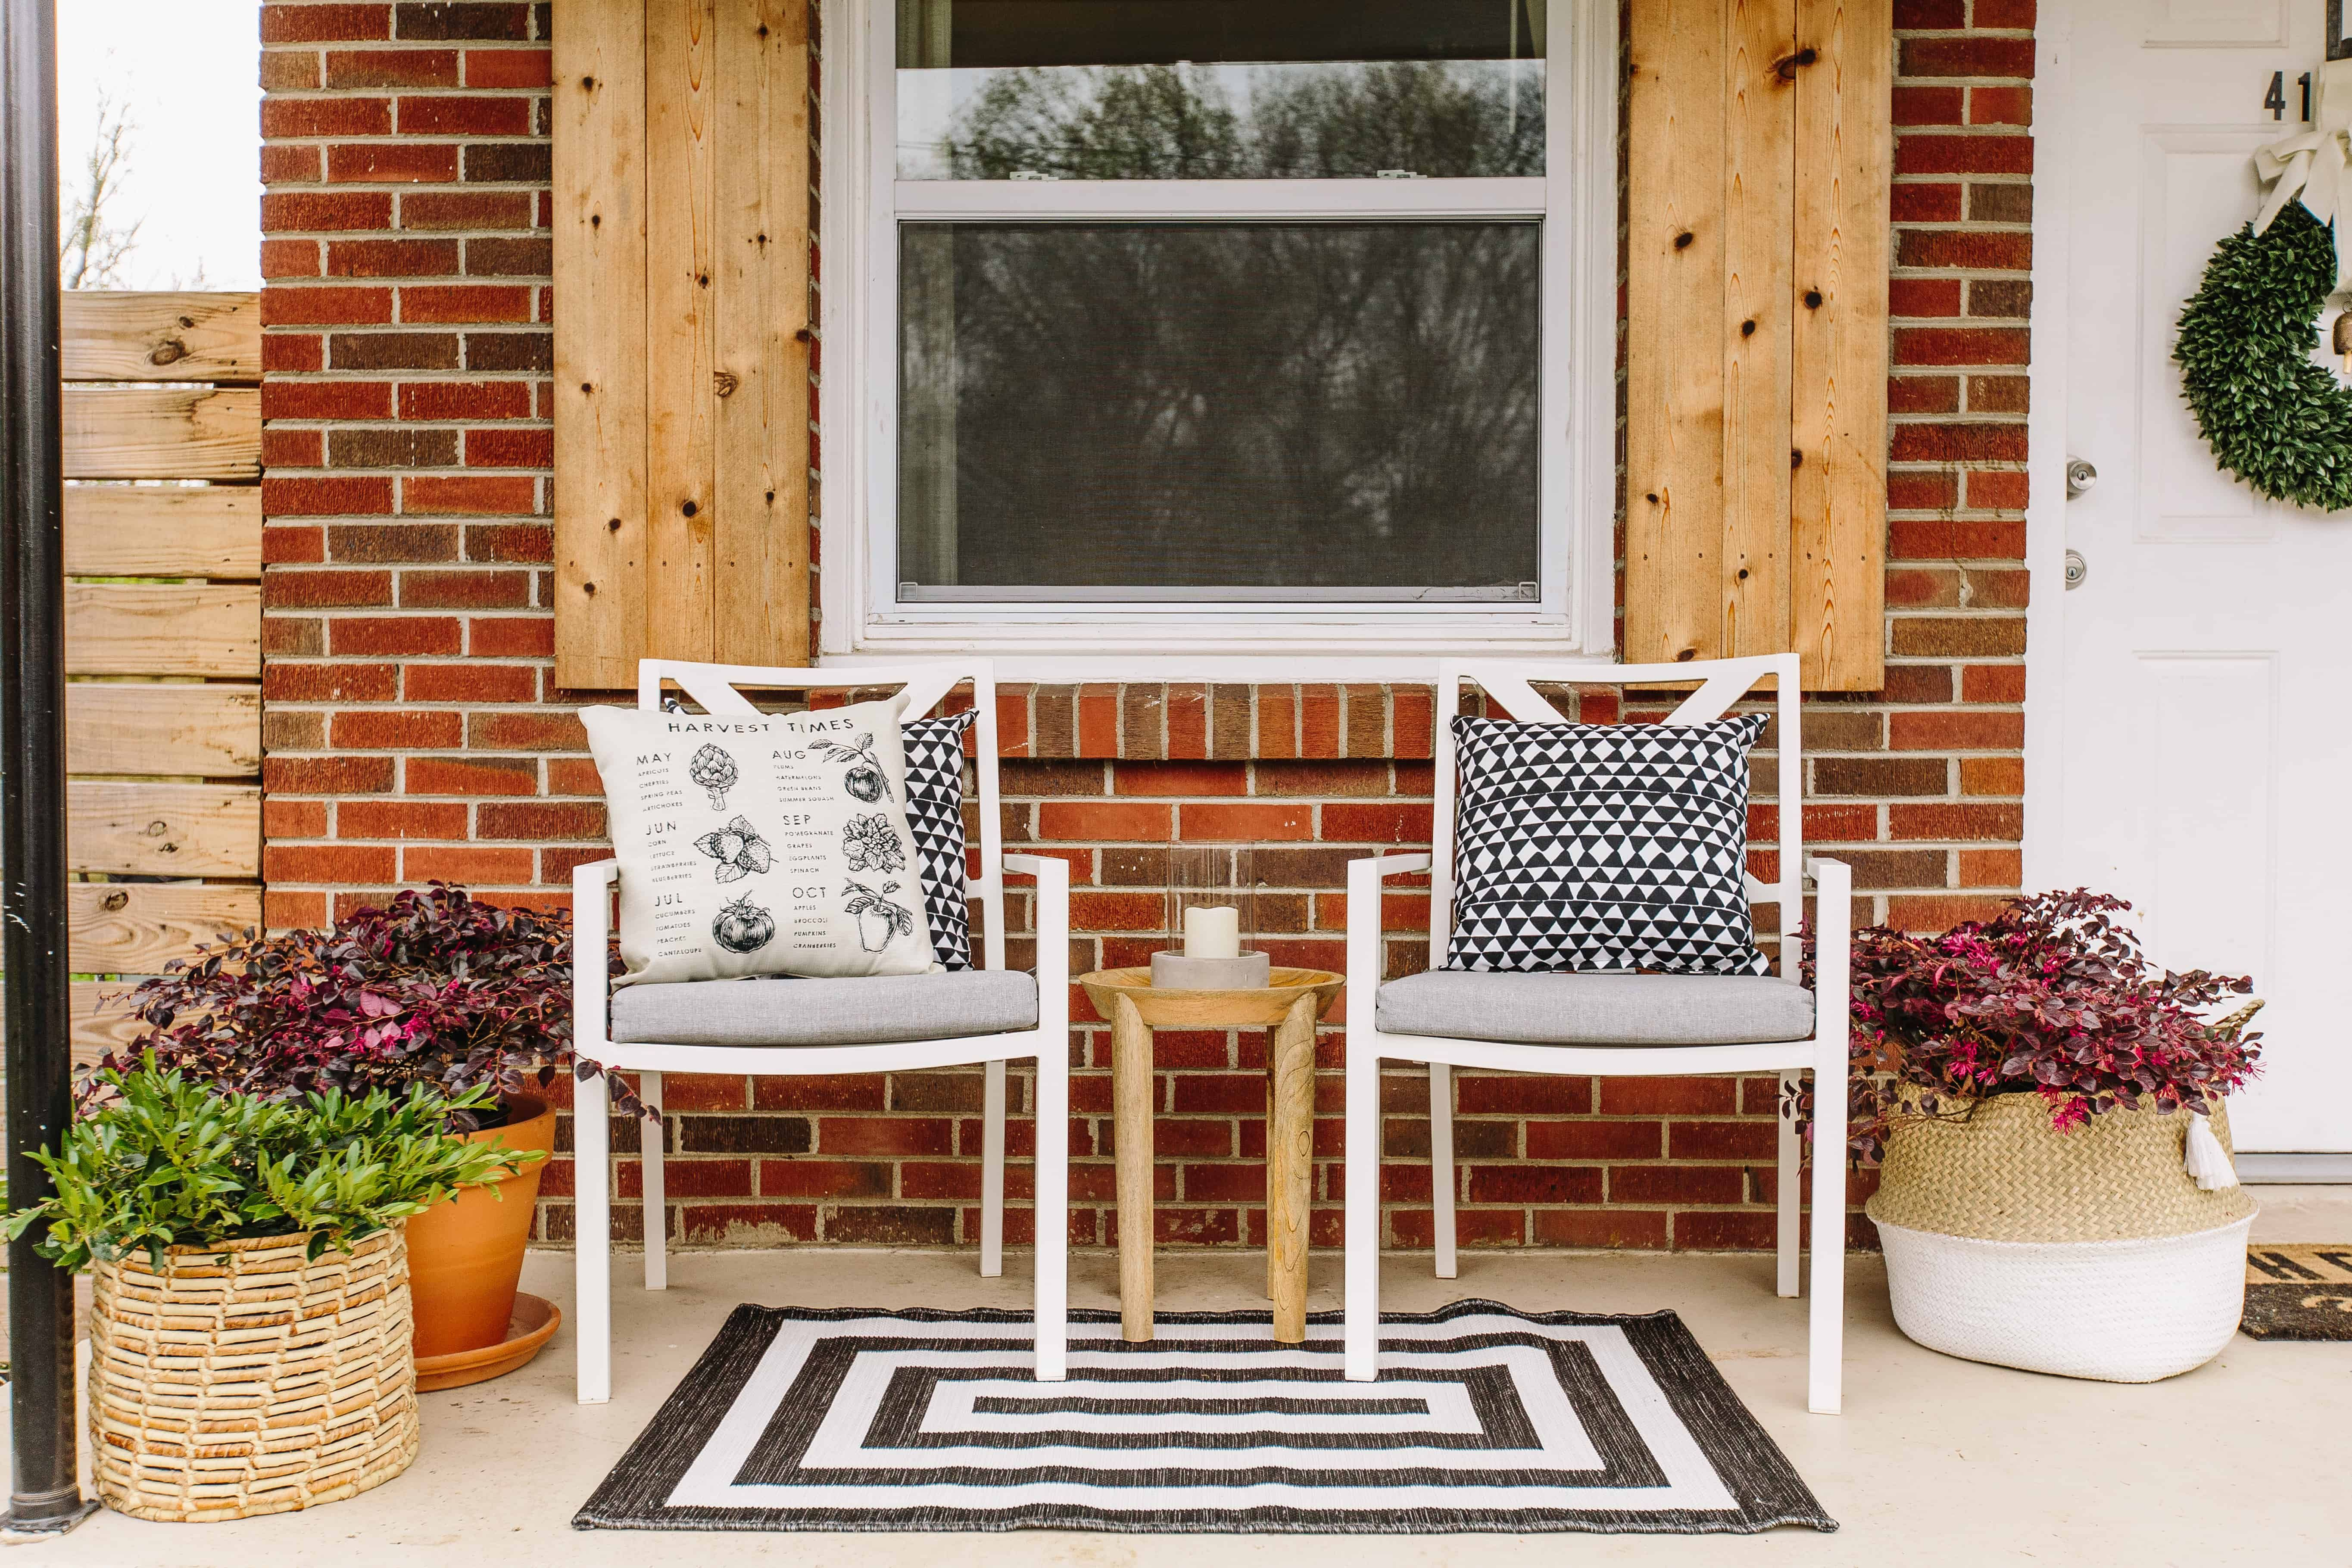 How to Create a Zen Outdoor Oasis on a Budget | Outdoor ...